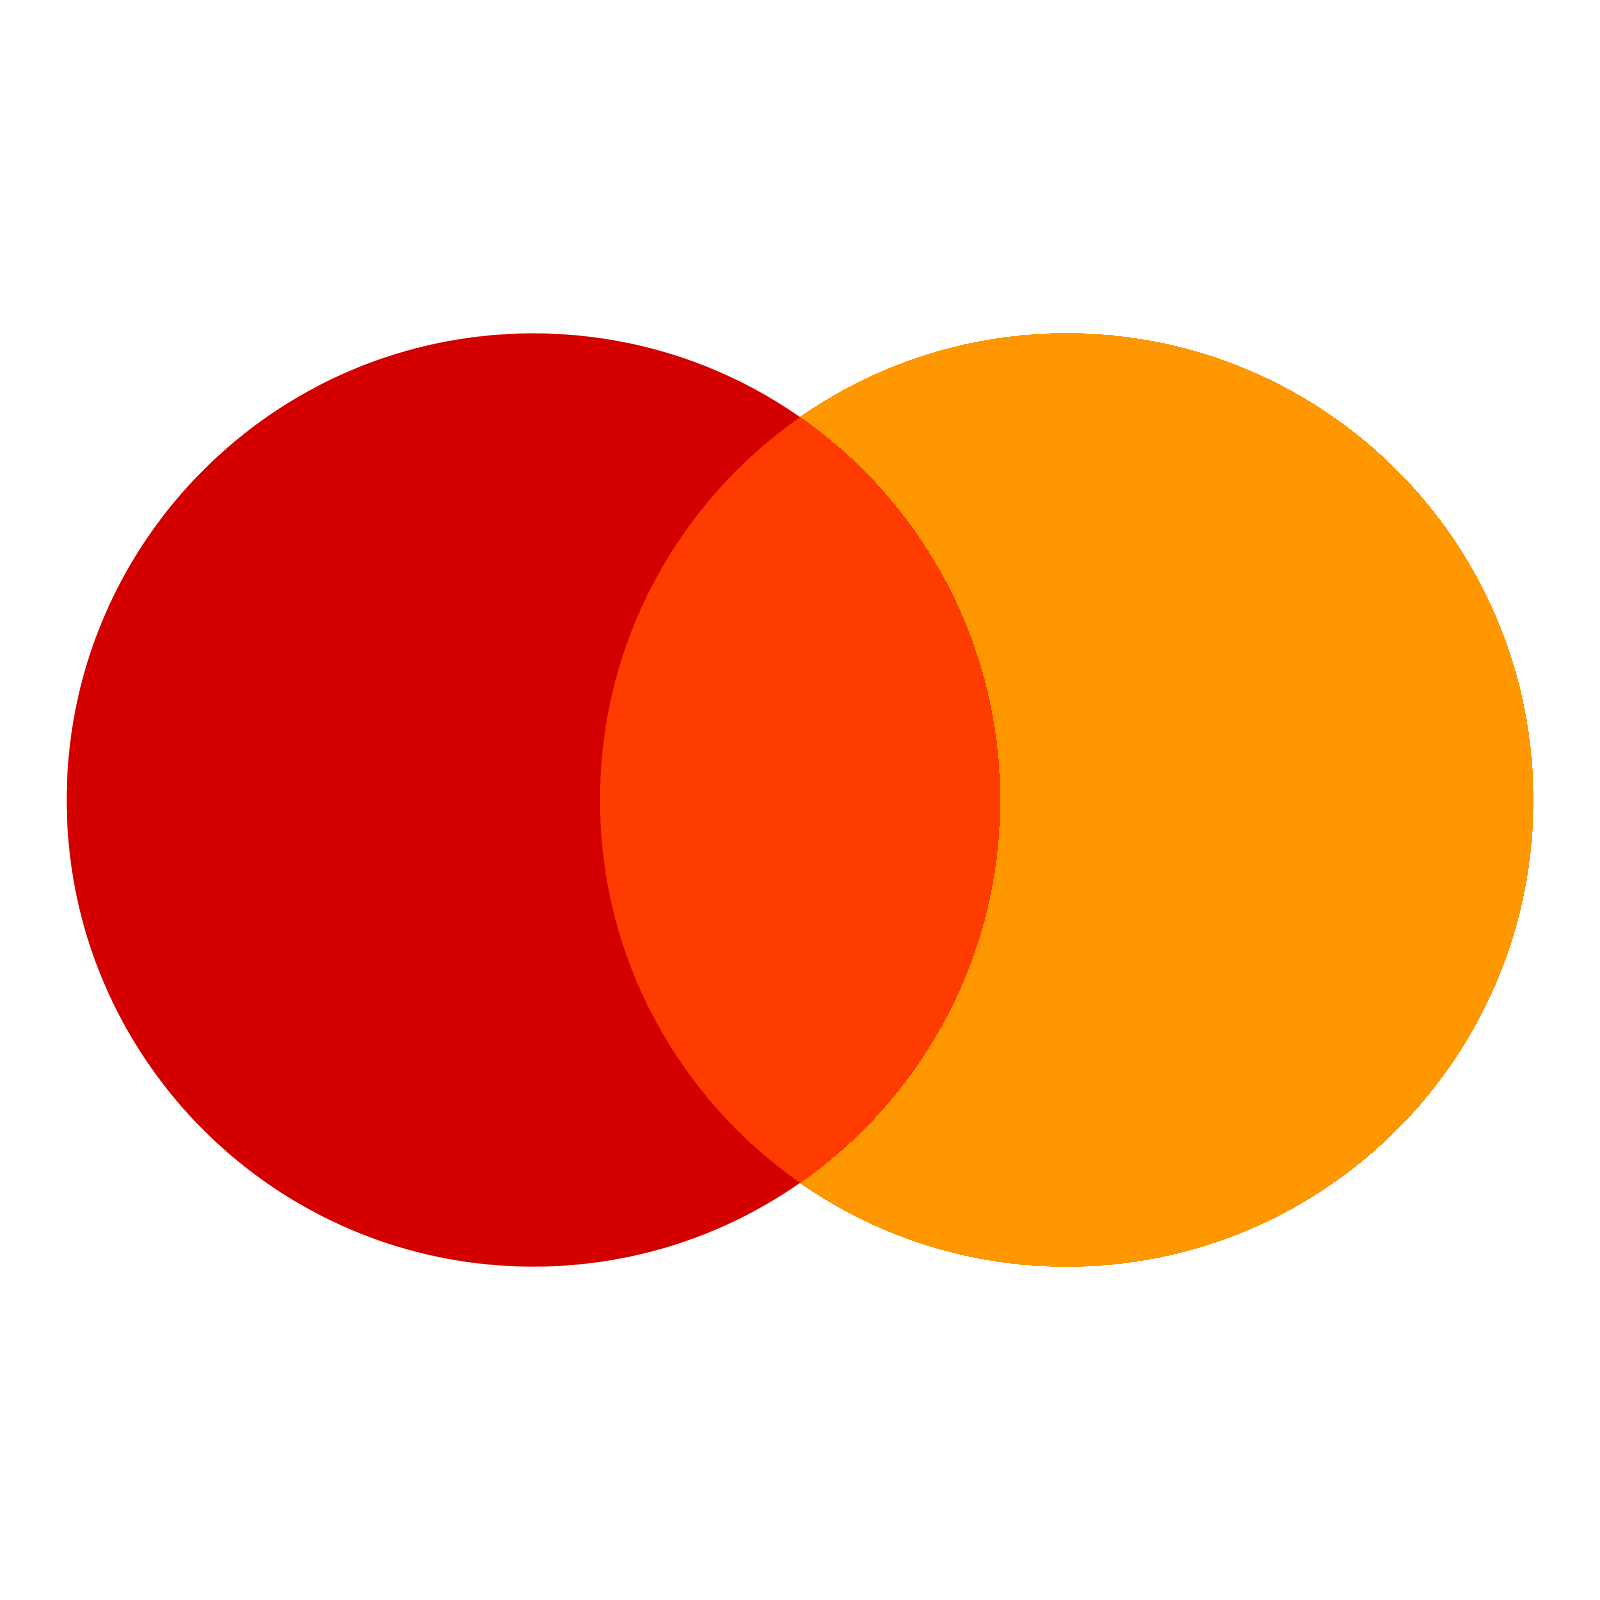 mastercard-icon-png-28